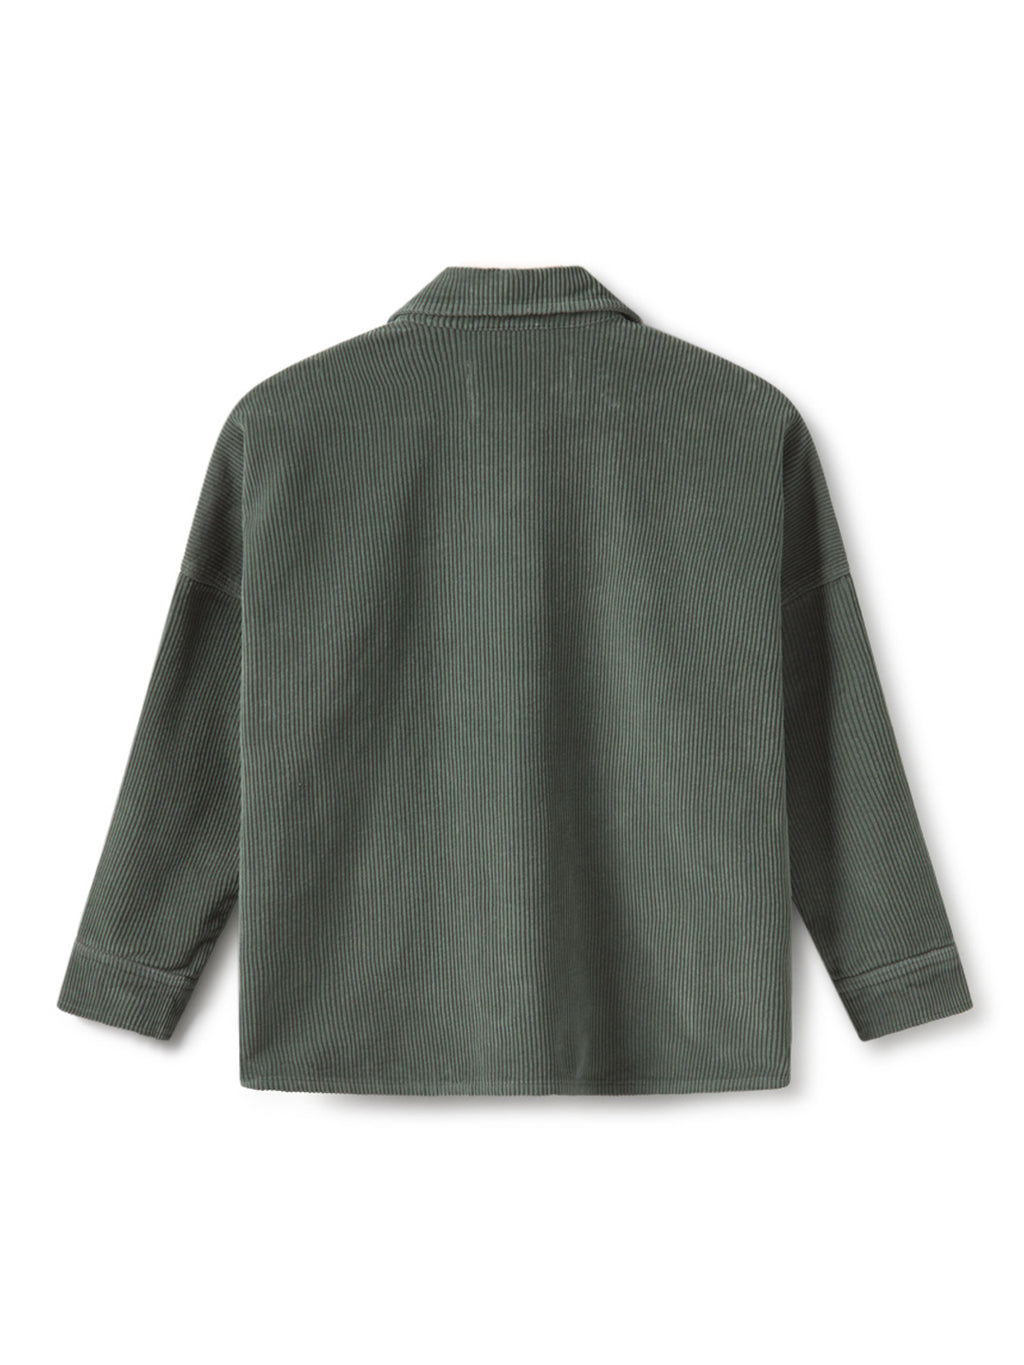 TWOTHIRDS Womens Jacket: Mactan - Washed Green back